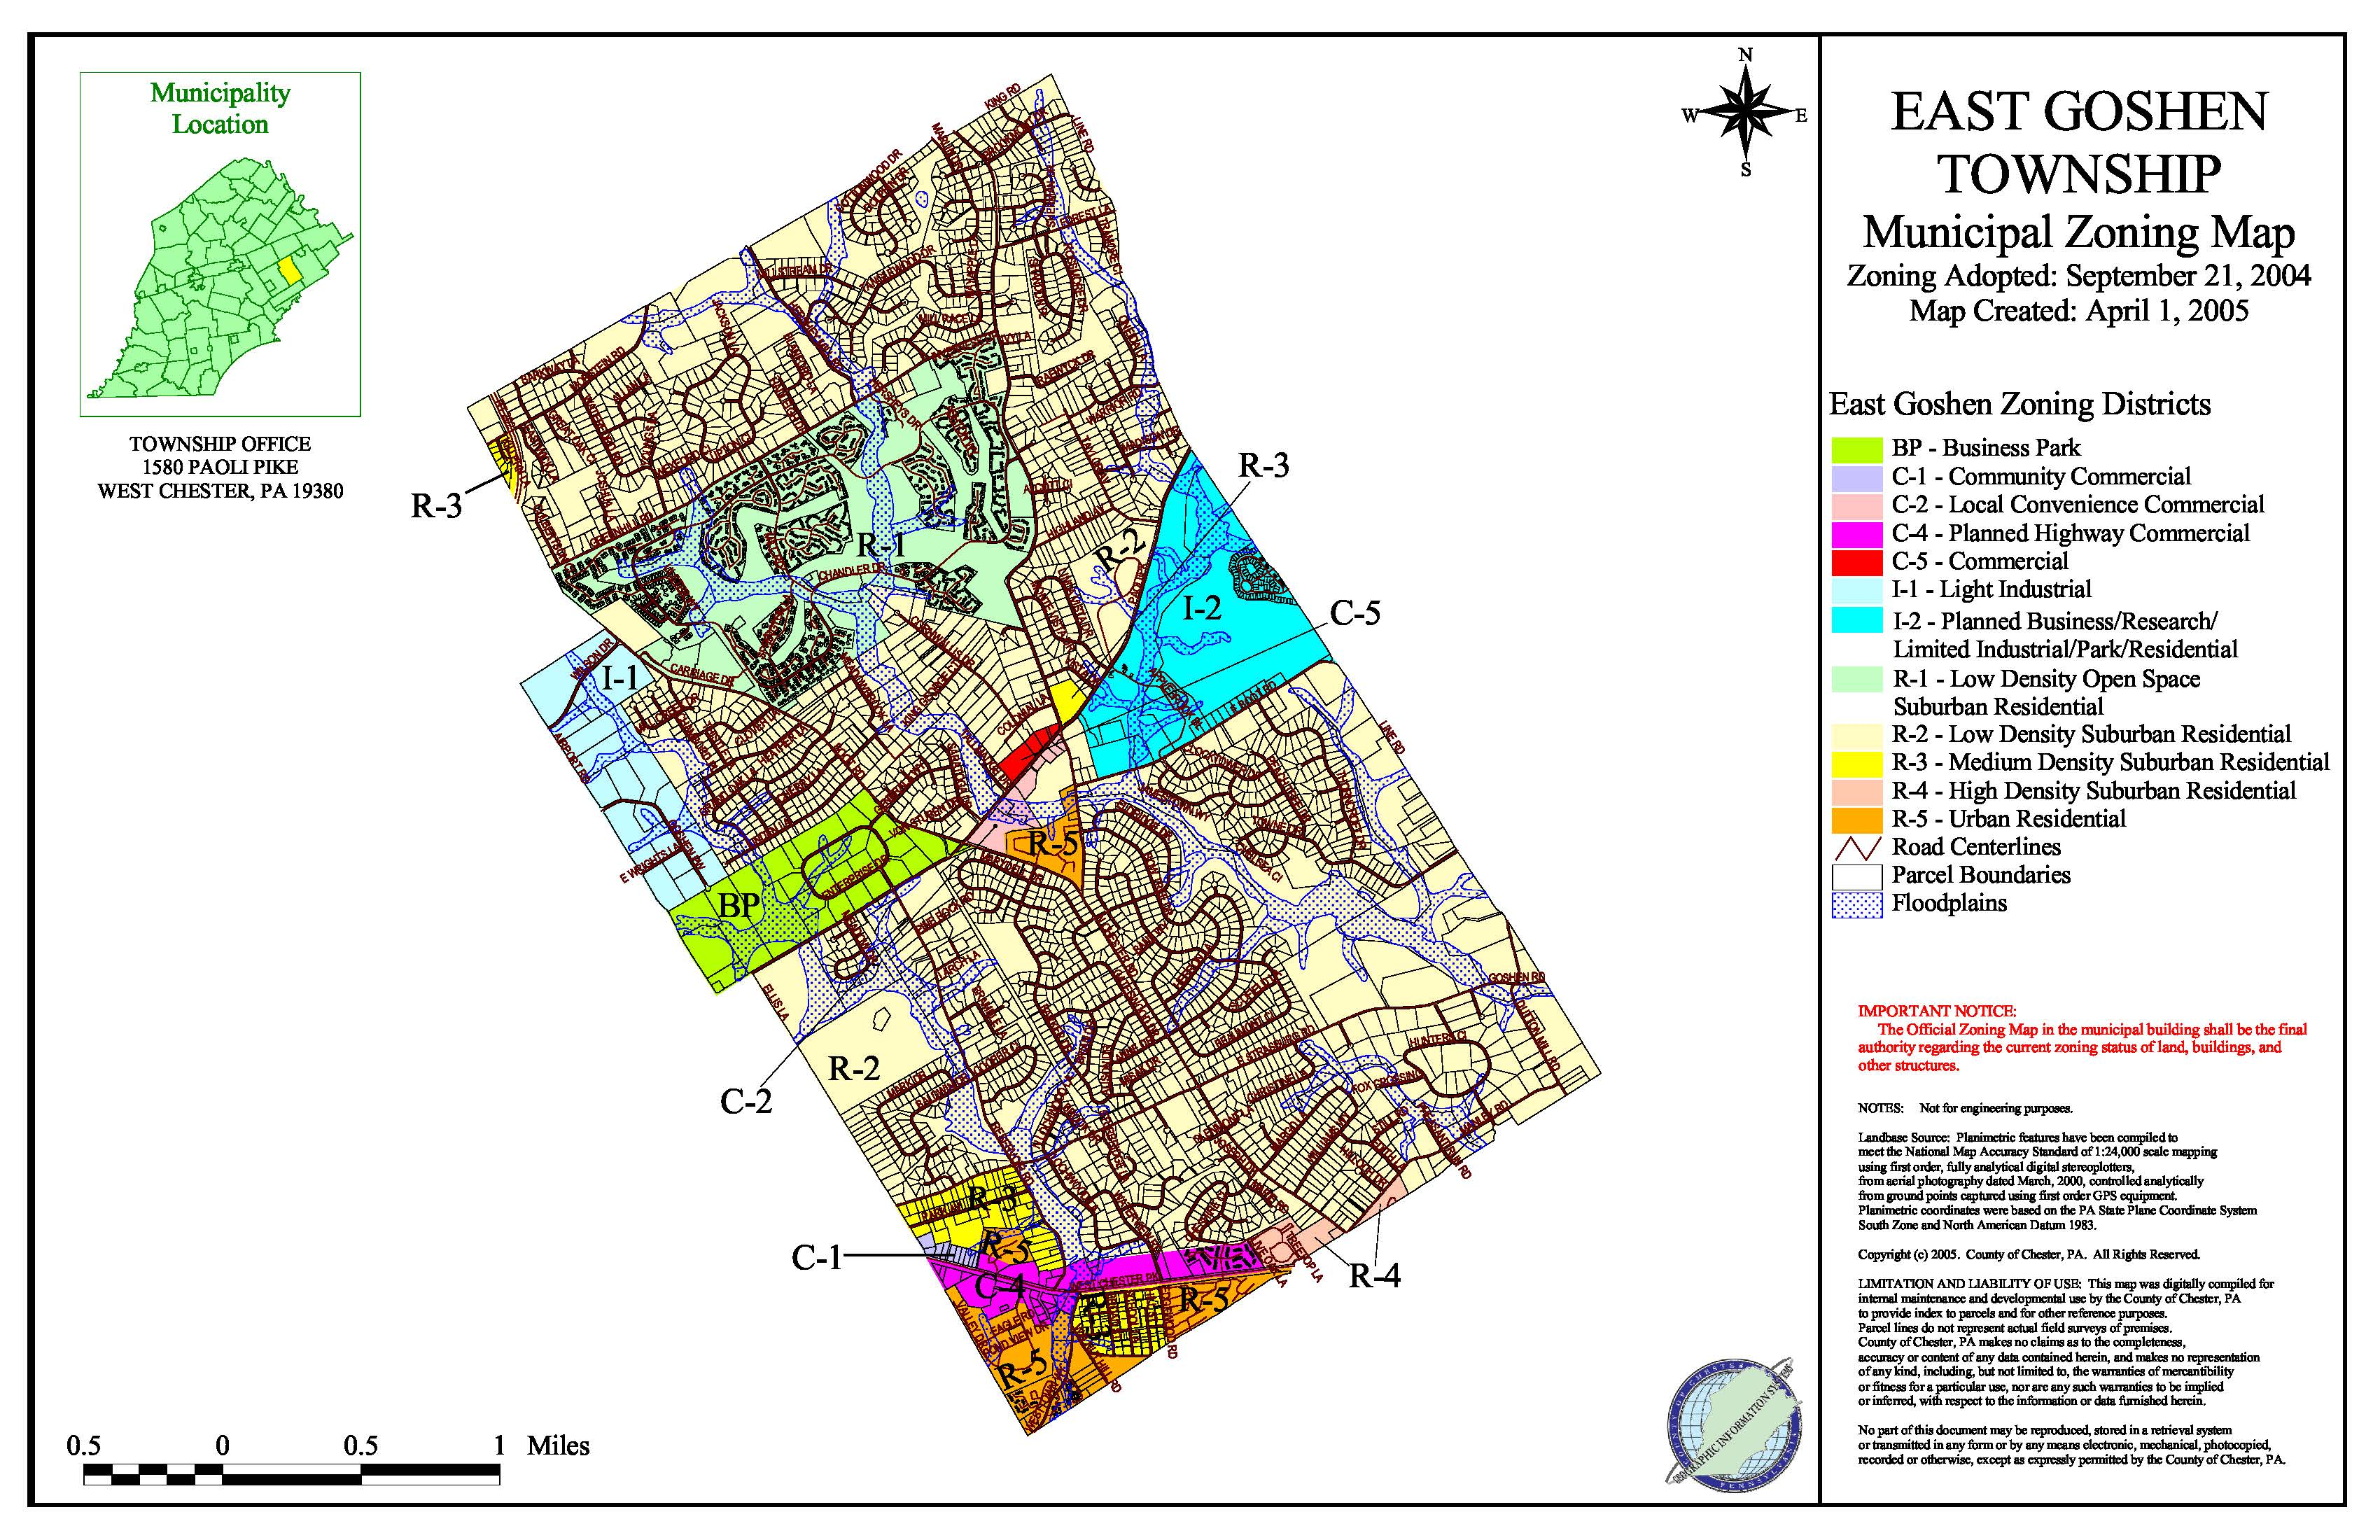 EGT-Zoning-Map-0306